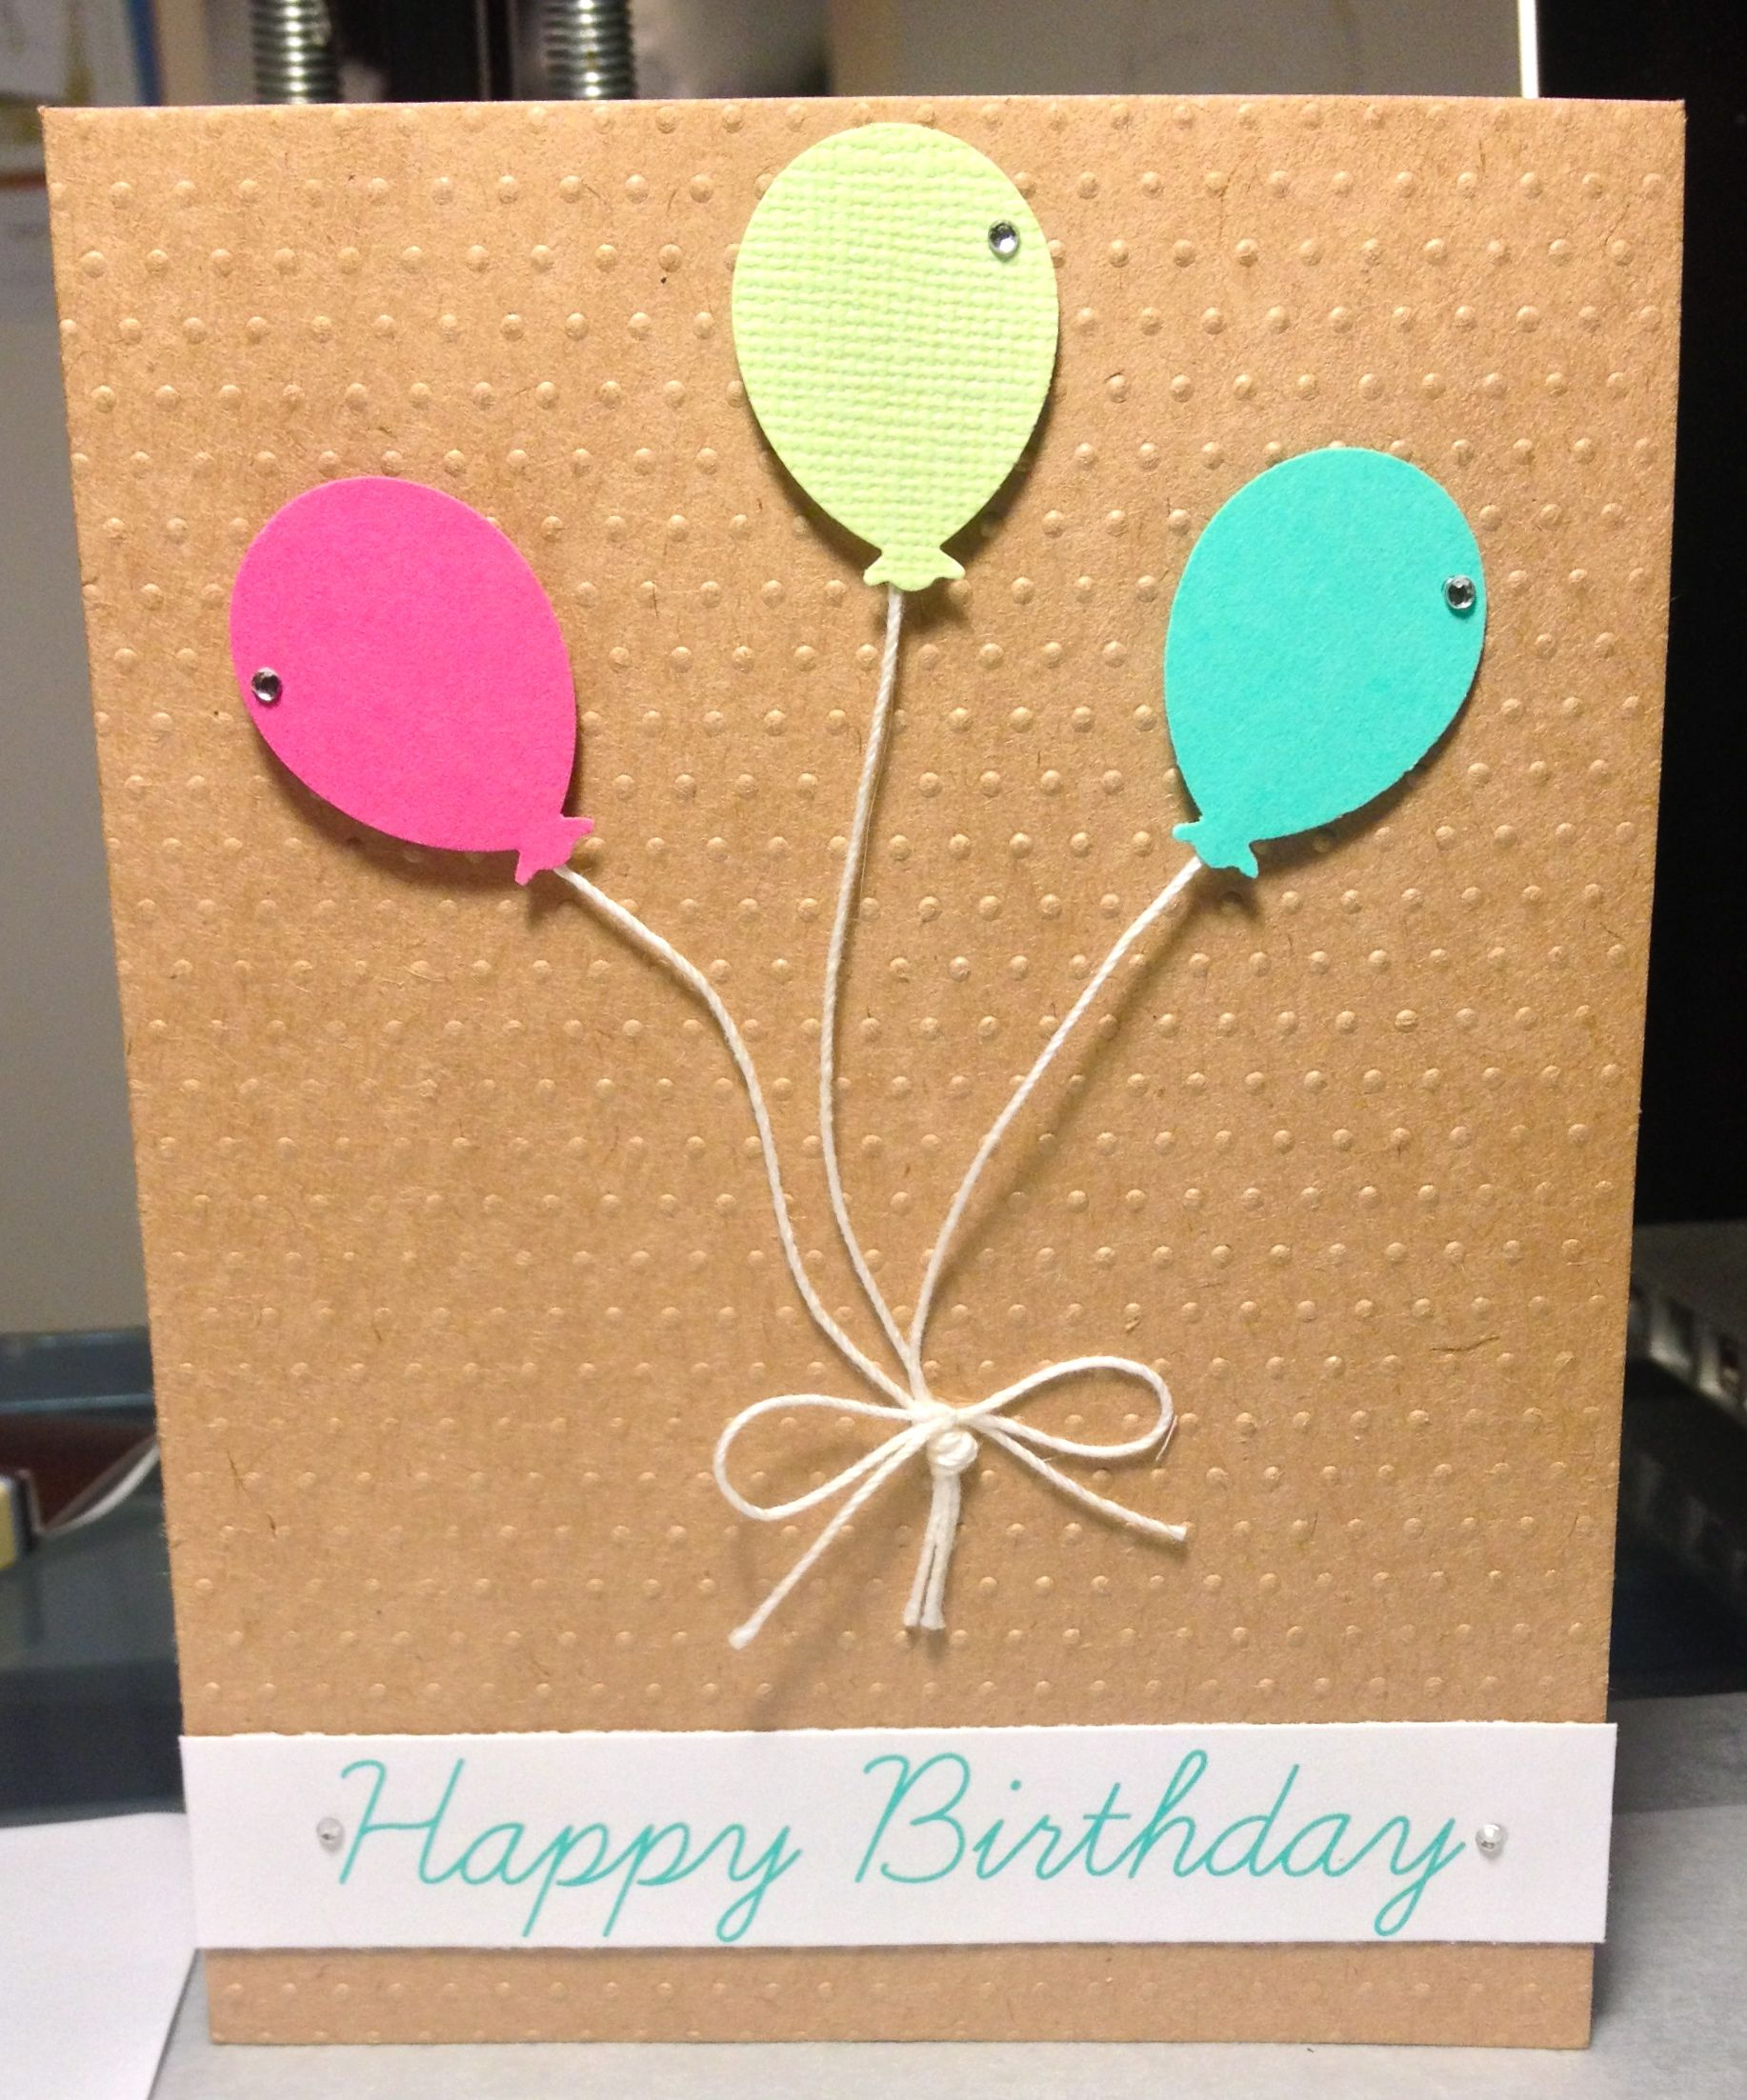 Handmade Birthday Card By Sonya Fedele Card Ideas Pinterest